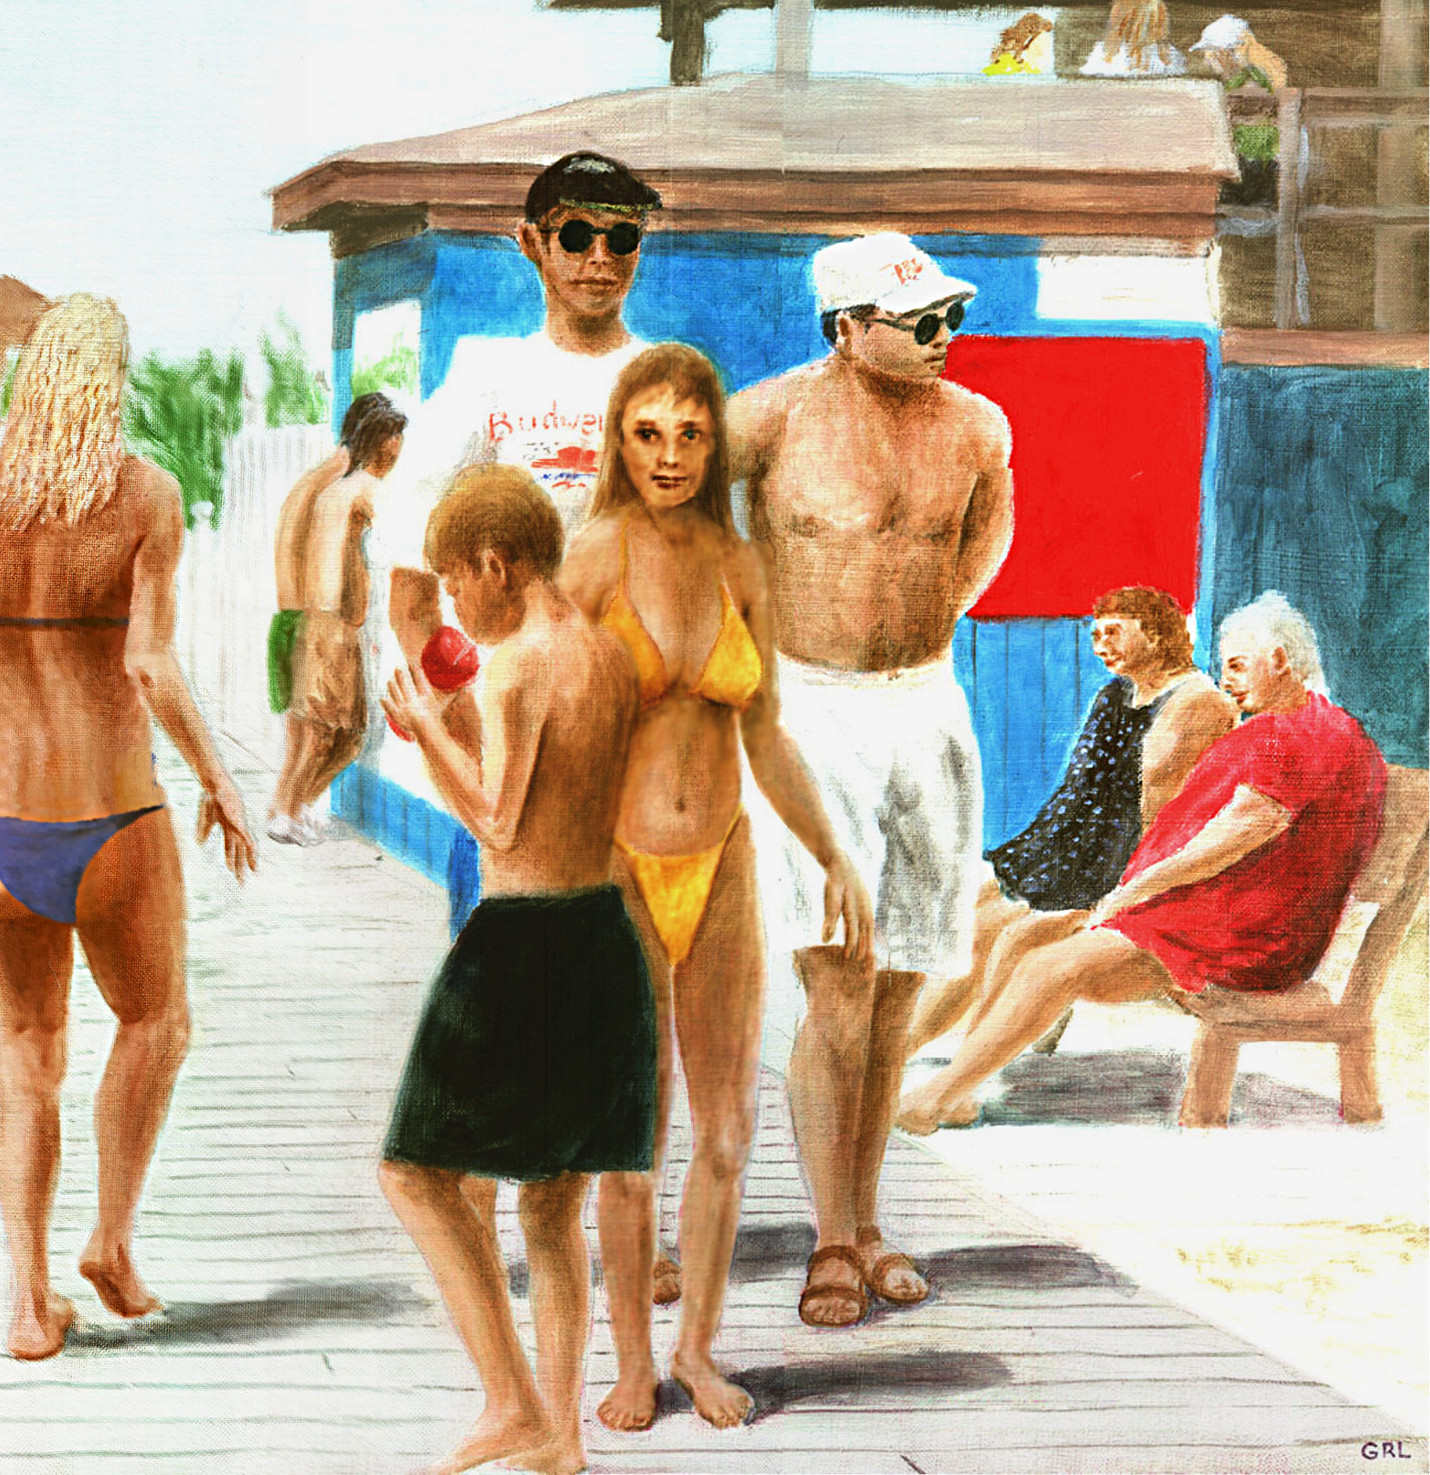 North Carolina Atlantic Beach Boardwalk                 original oil painting (detail3) - original fine art work                 by G. Linsenmayer